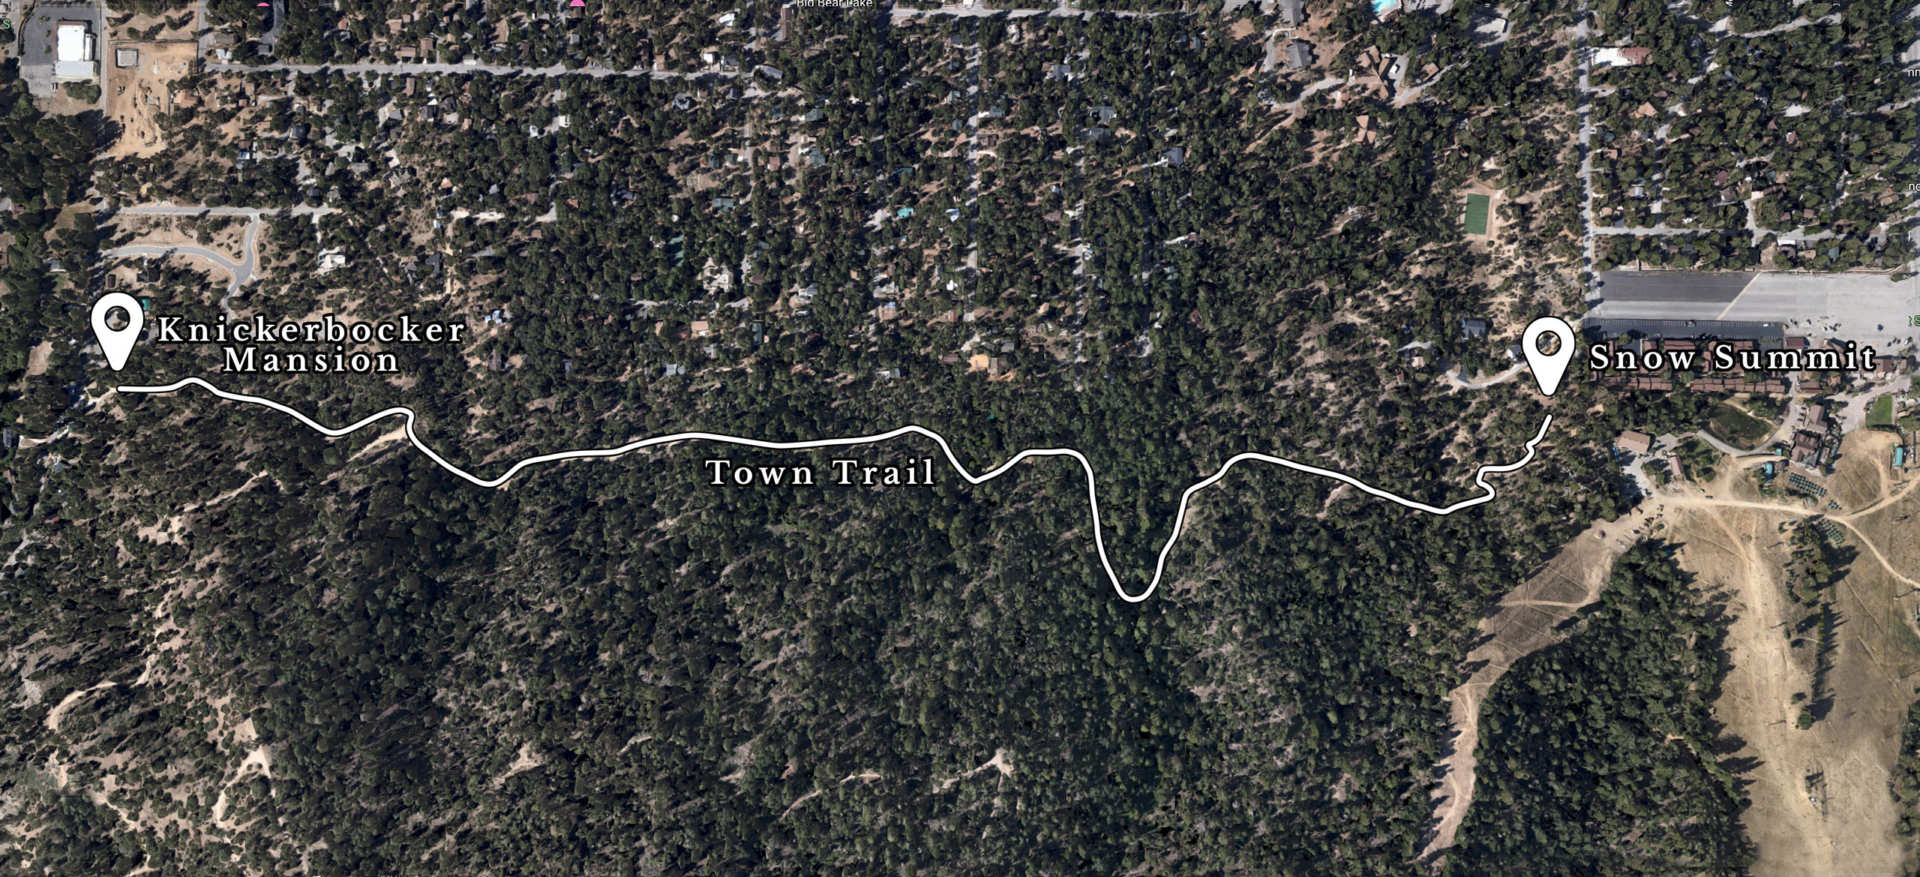 Trail map of the town trail in big bear lake